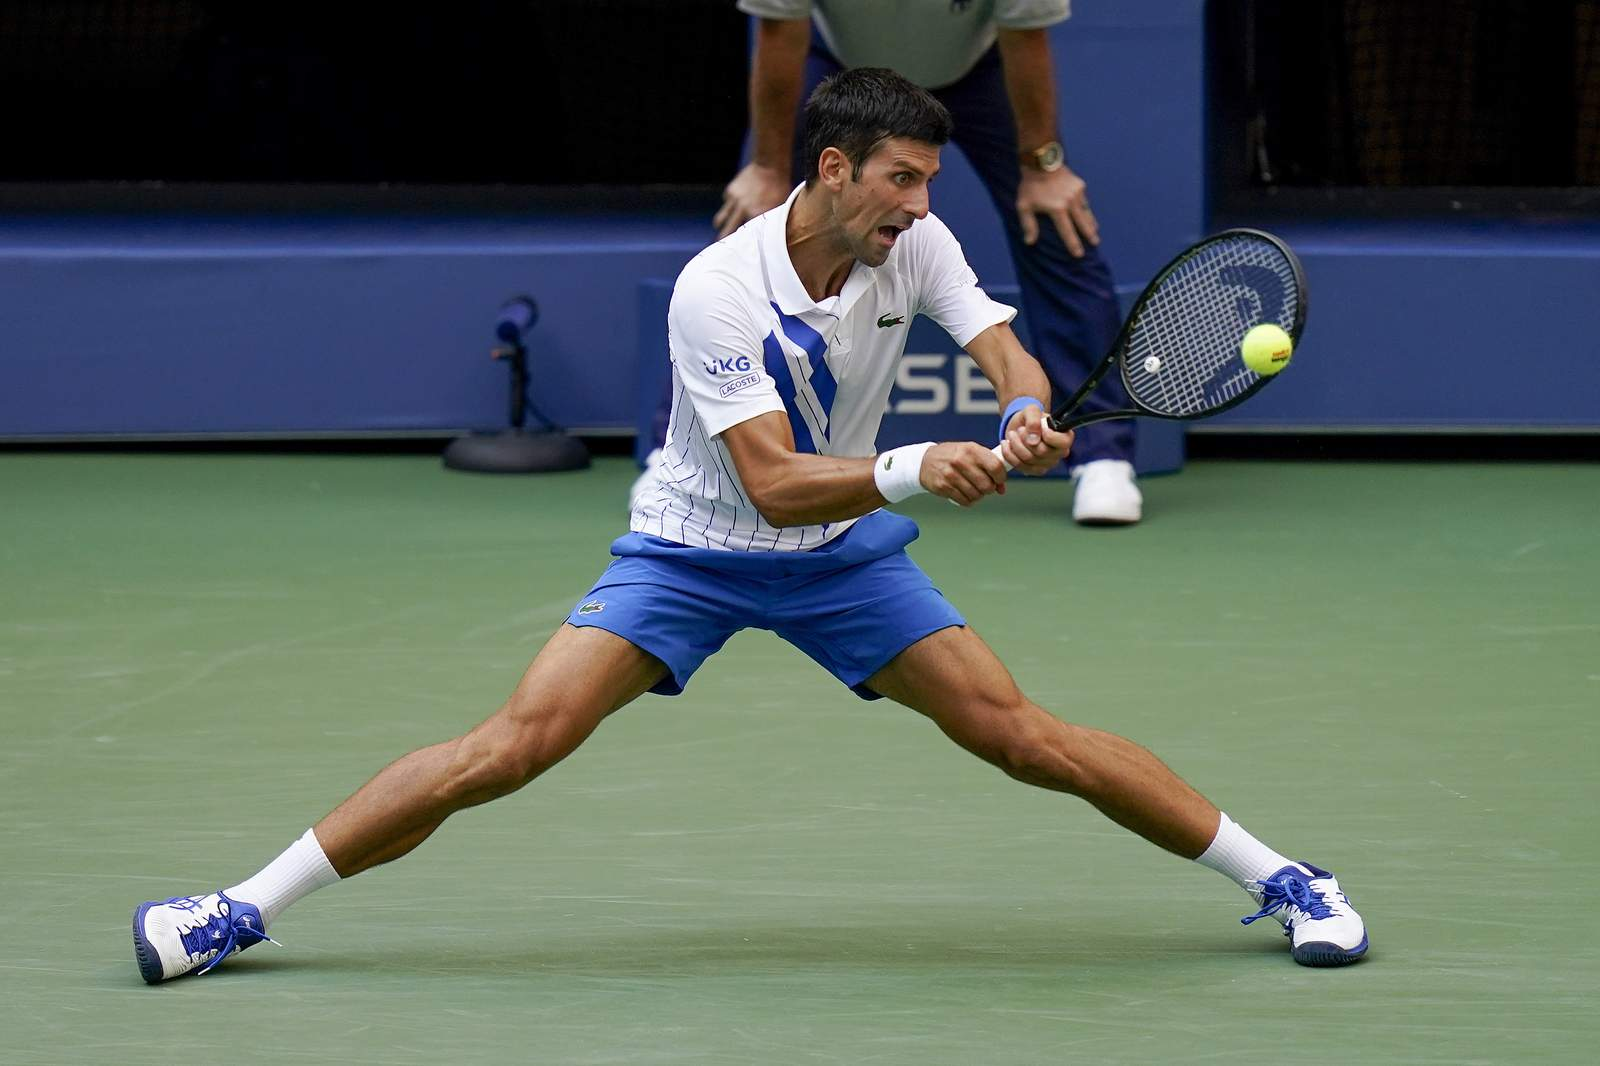 Djokovic Out Of Us Open After Hitting Line Judge With Ball